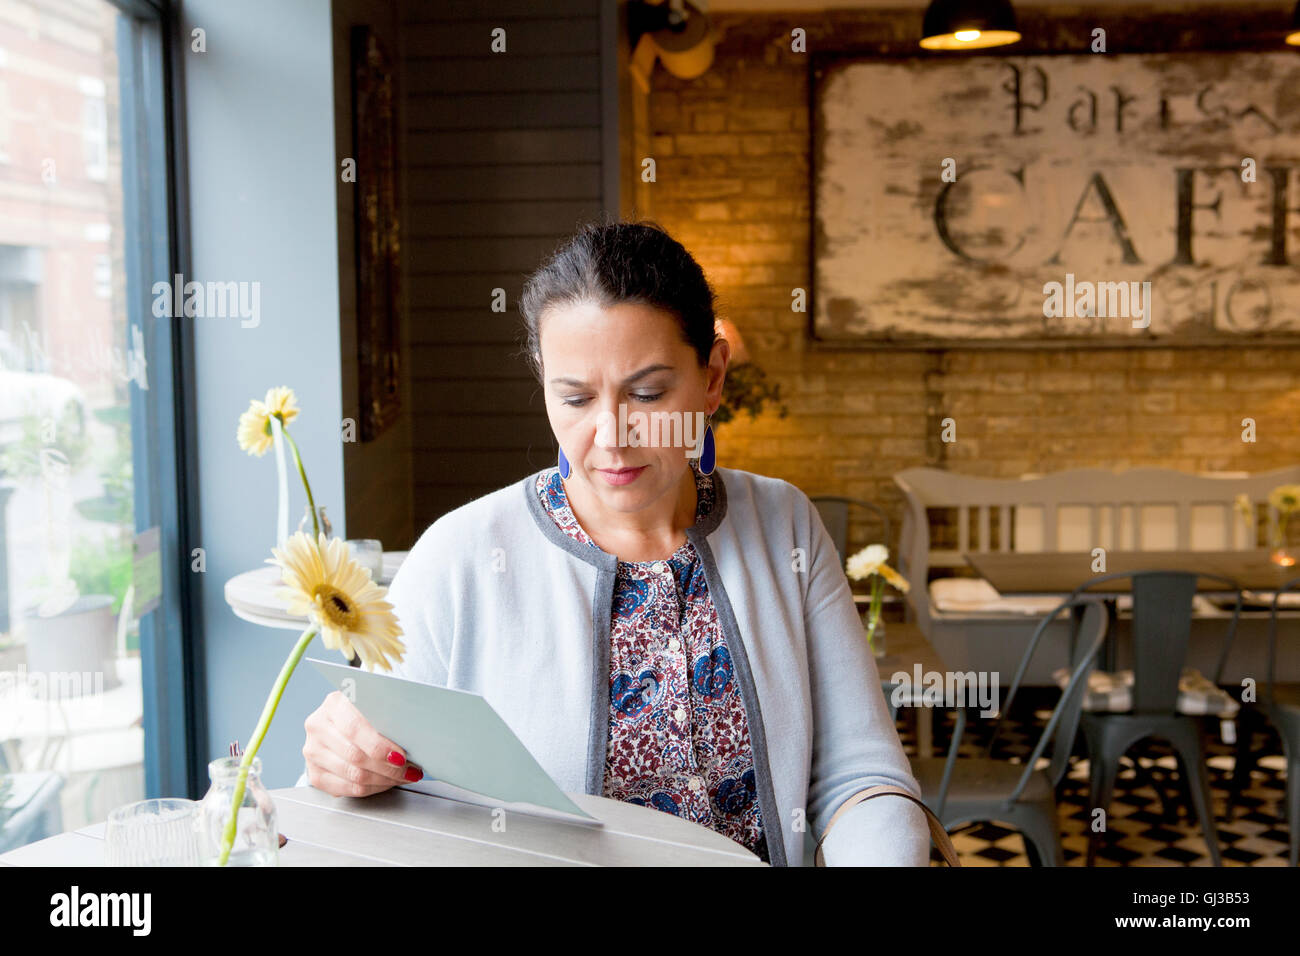 Mature female customer reading menu in cafe - Stock Image